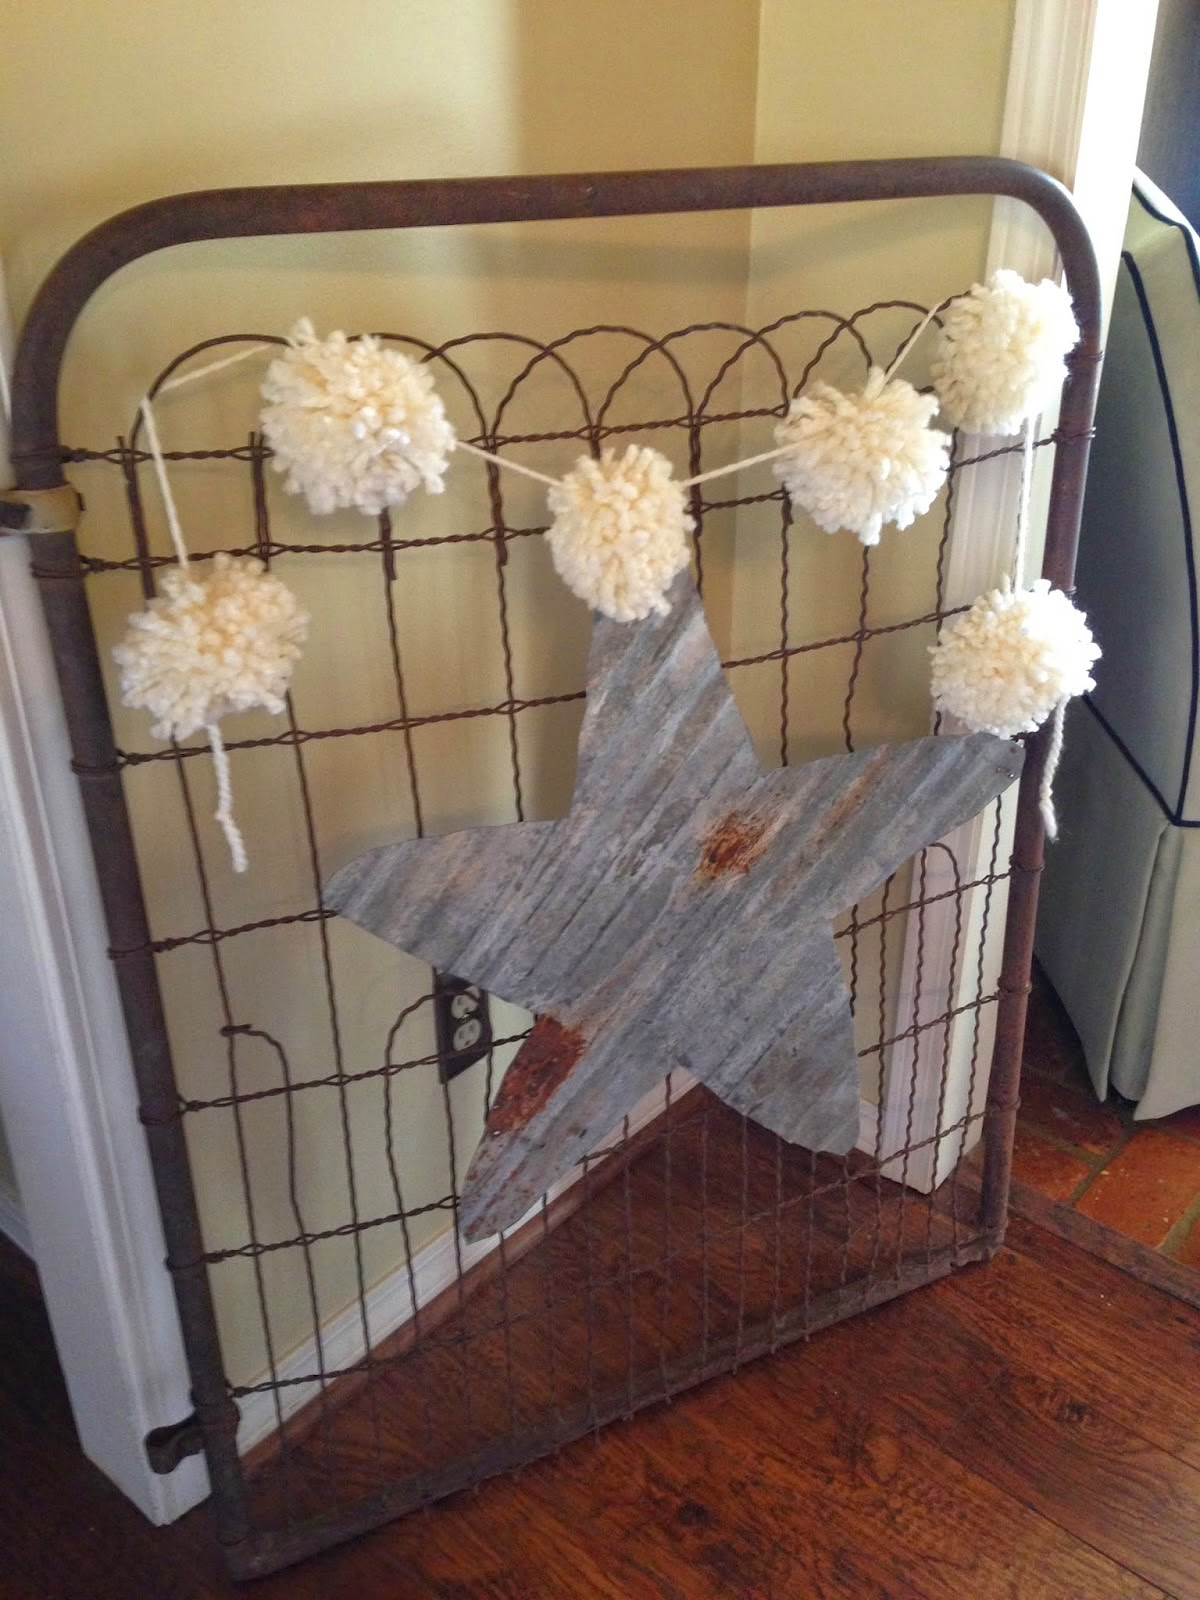 Walmart White Horse Rd >> Vintage Inspiration Party #172 - Vintage Decor Galore! | Knick of Time